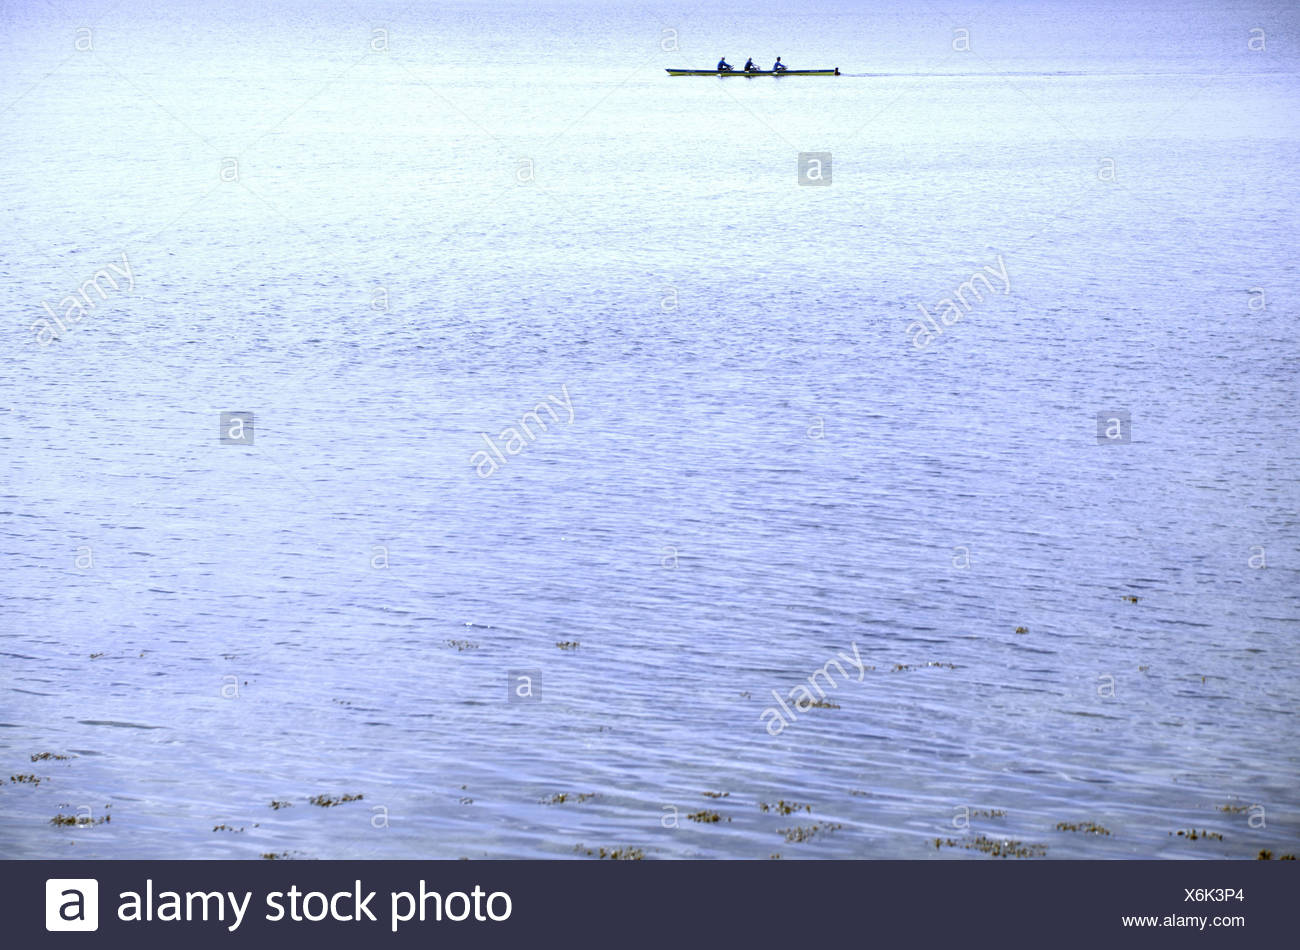 The Baltic Sea, rowing boat, outdoors, watersports, water, sea, rowing, boat, firth, Germany, Europe, Schleswig-Holstein, Flensburg, side view, water surface, - Stock Image